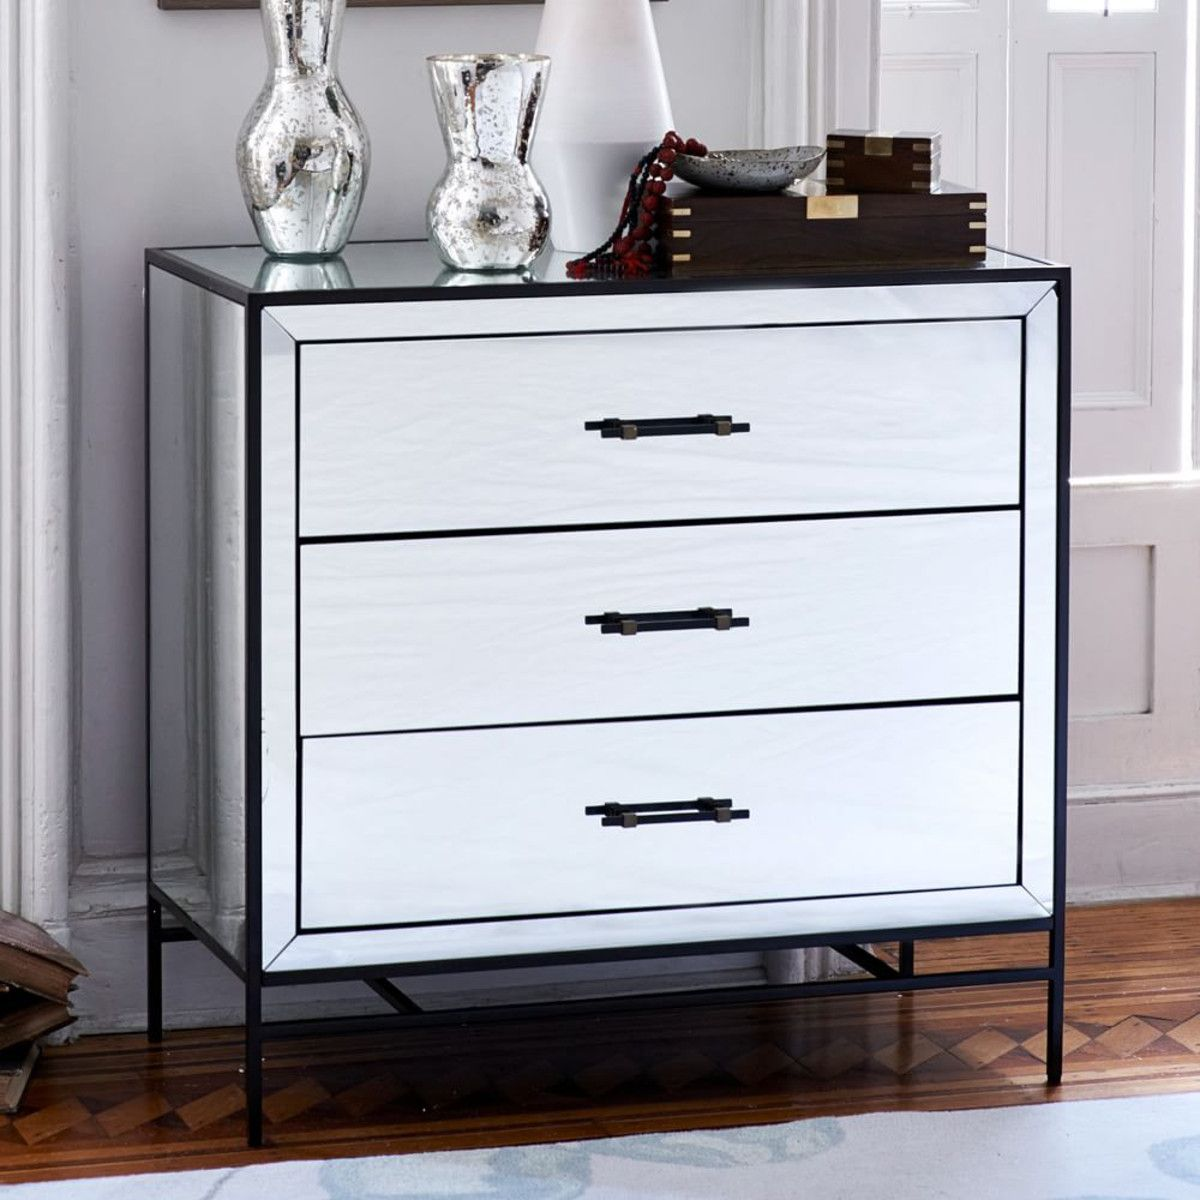 Mirrored 3 Drawer Dresser West Elm Australia